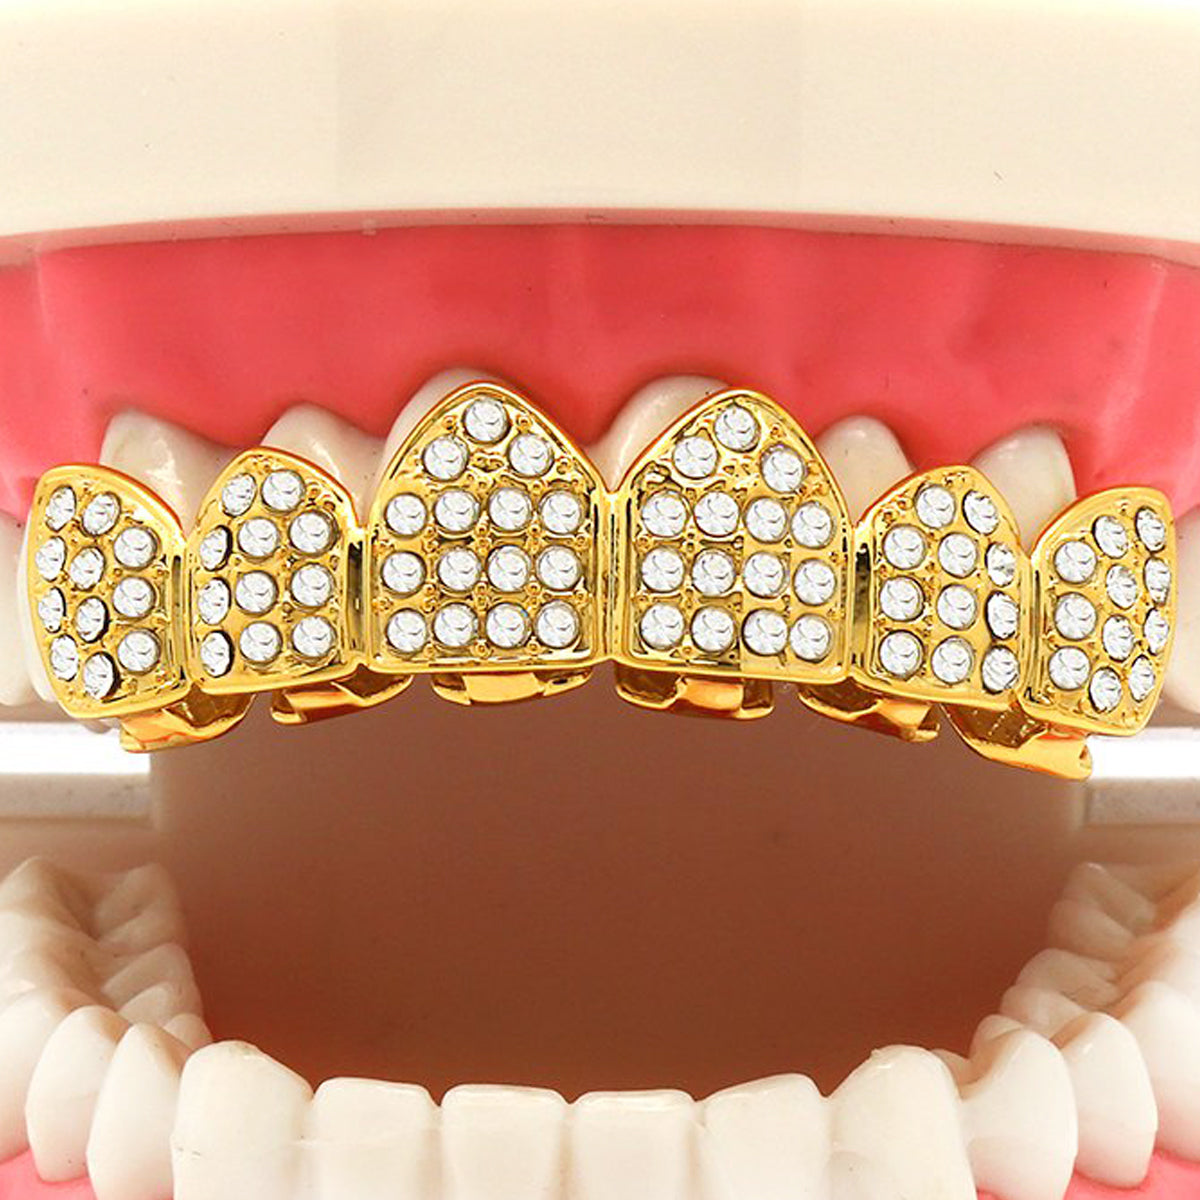 GOLD TOP GRILLZ FULL ICED OUT